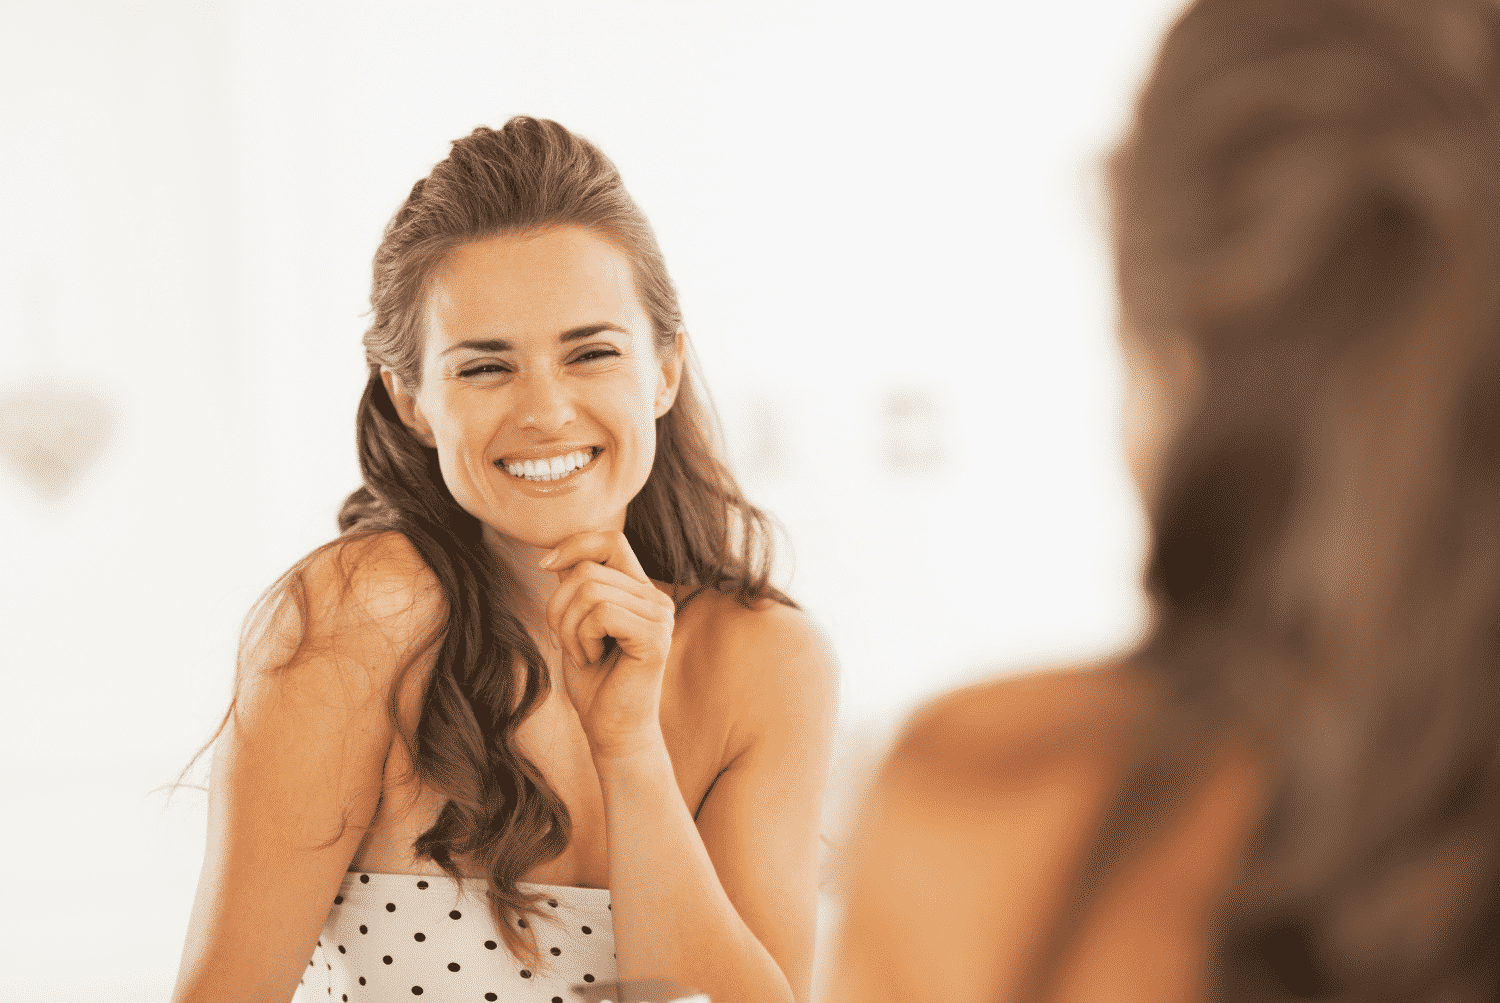 4 Reasons To Invest In Your Smile - Dr. Boals